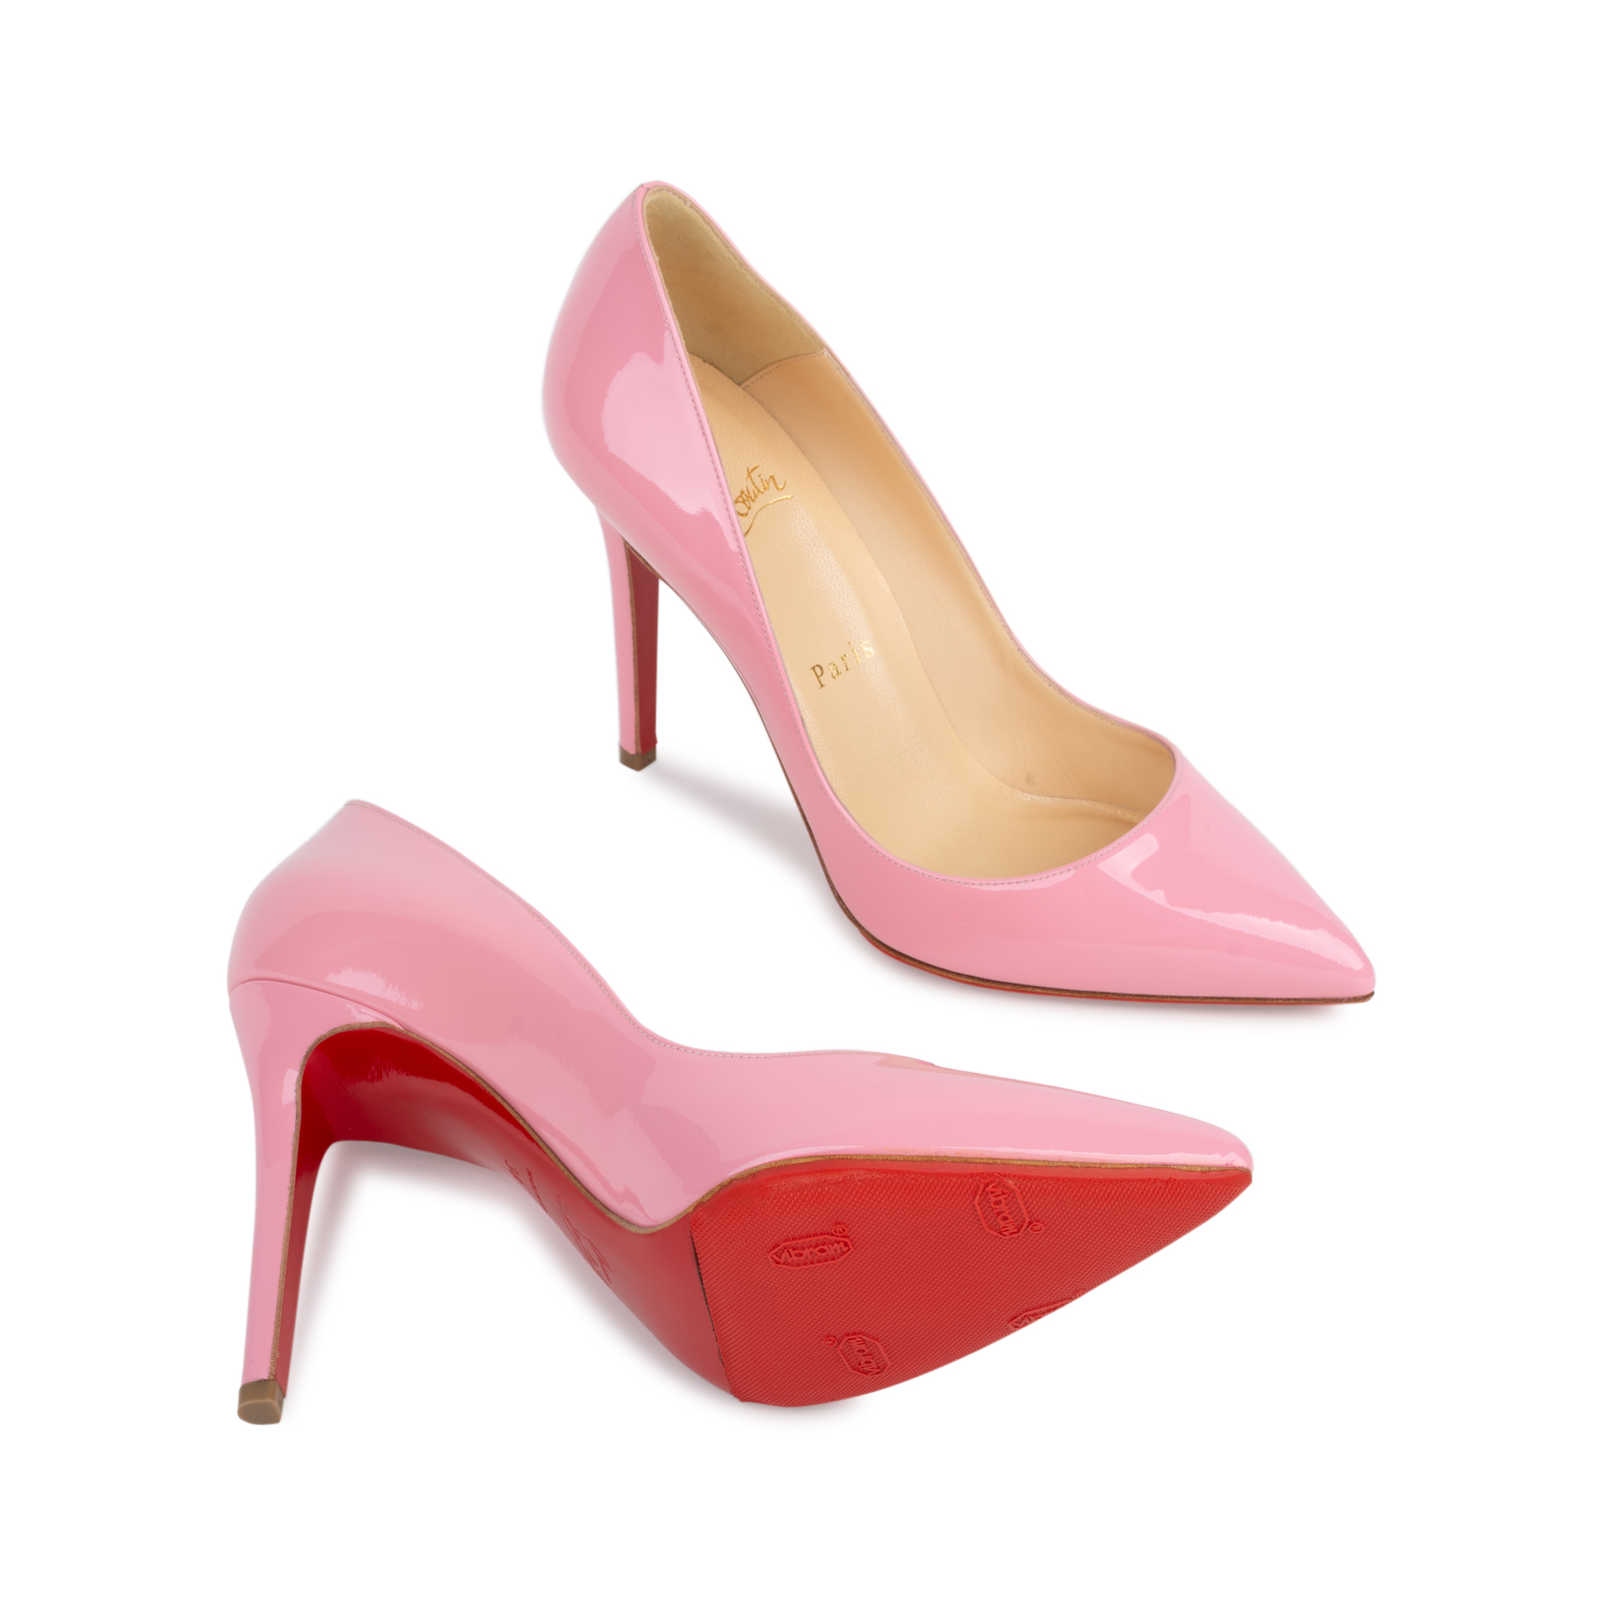 the best attitude df0f7 0efc7 Authentic Second Hand Christian Louboutin Baby Pink Pigalle ...